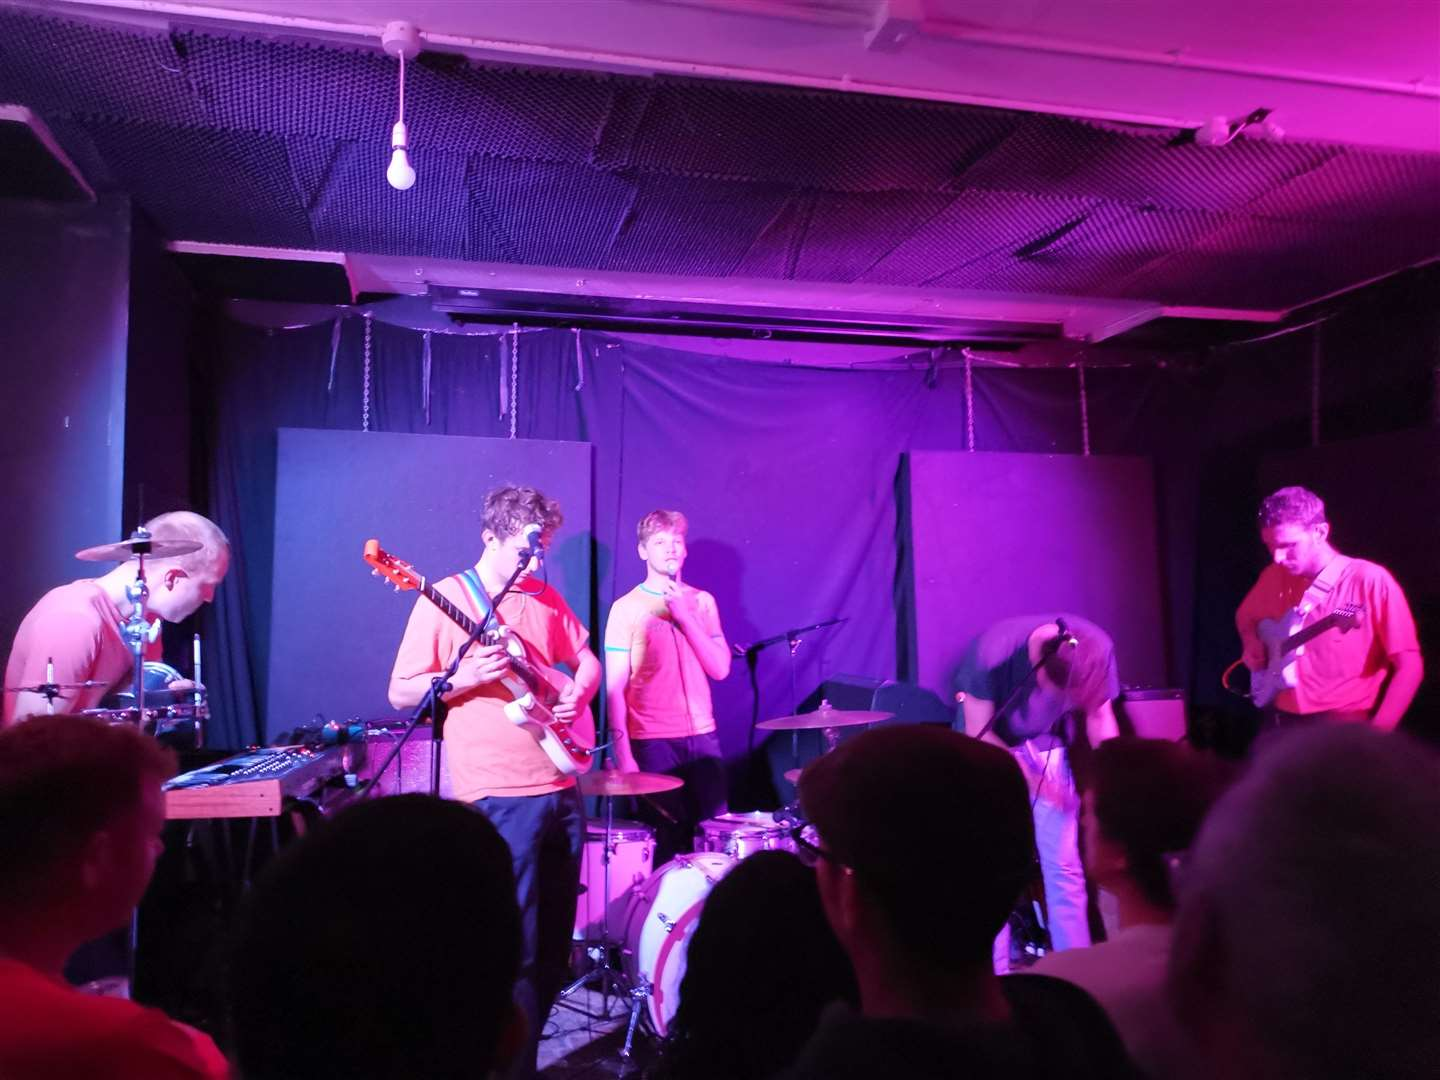 Pictured - Squid performing at Elsewhere in Margate